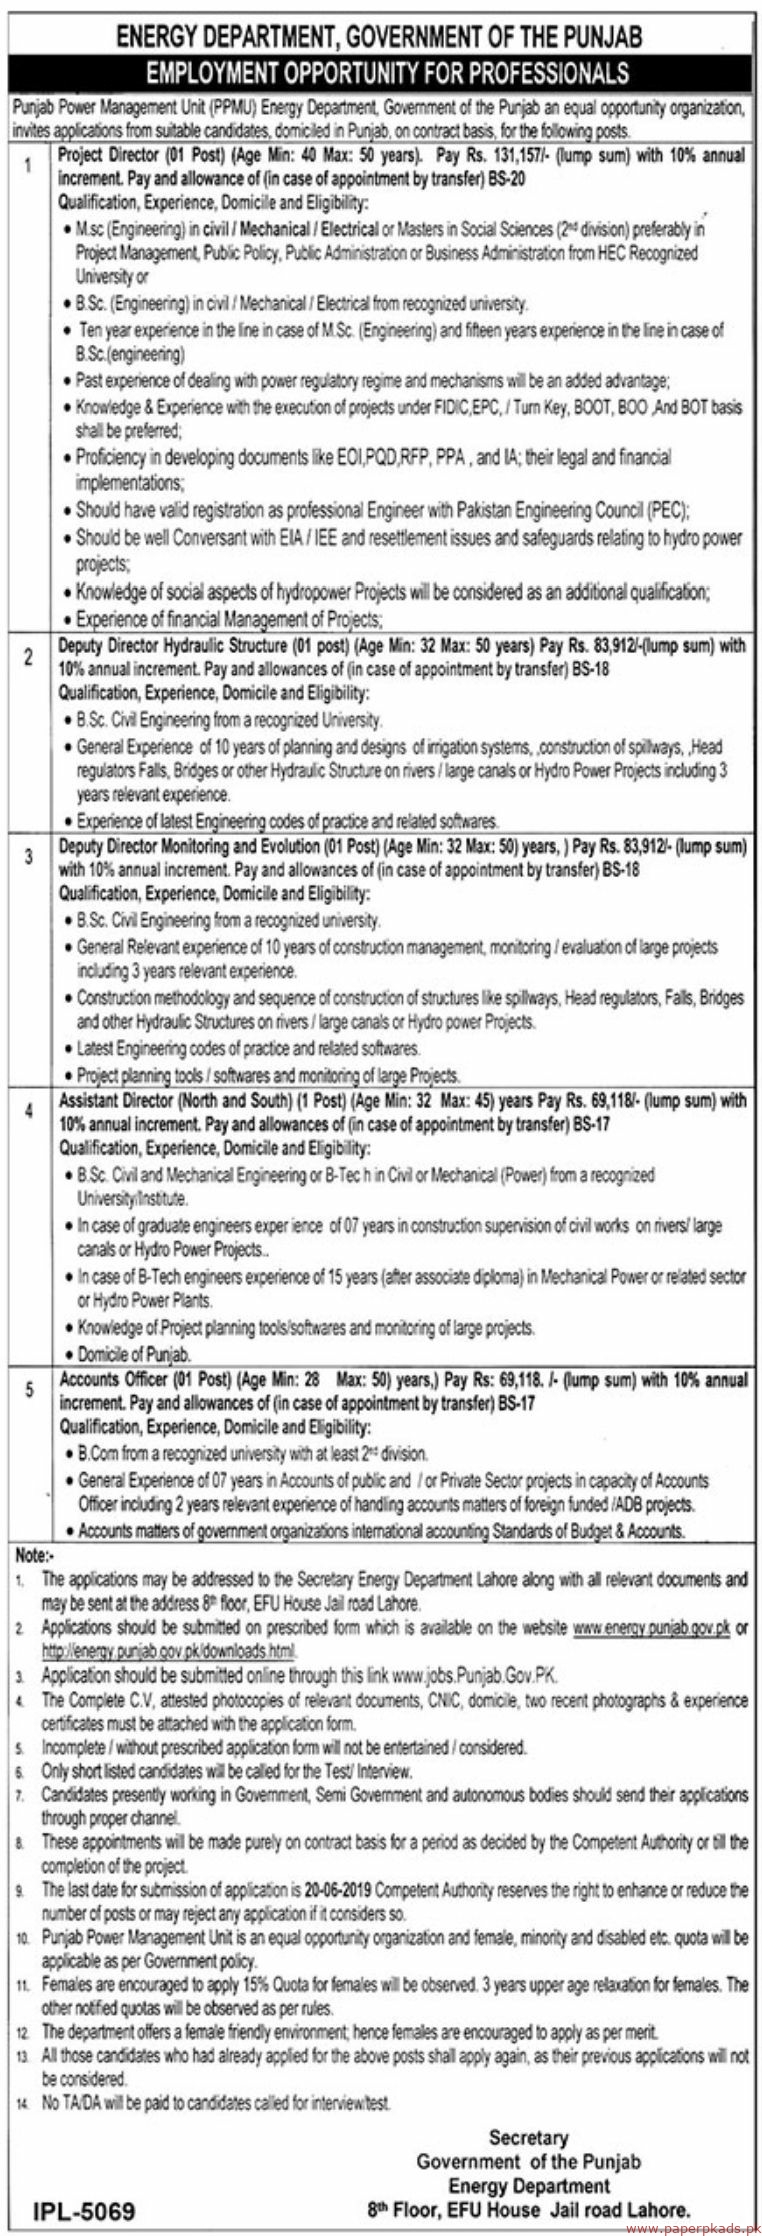 Energy Department Government of the Punjab Jobs 2019 Latest